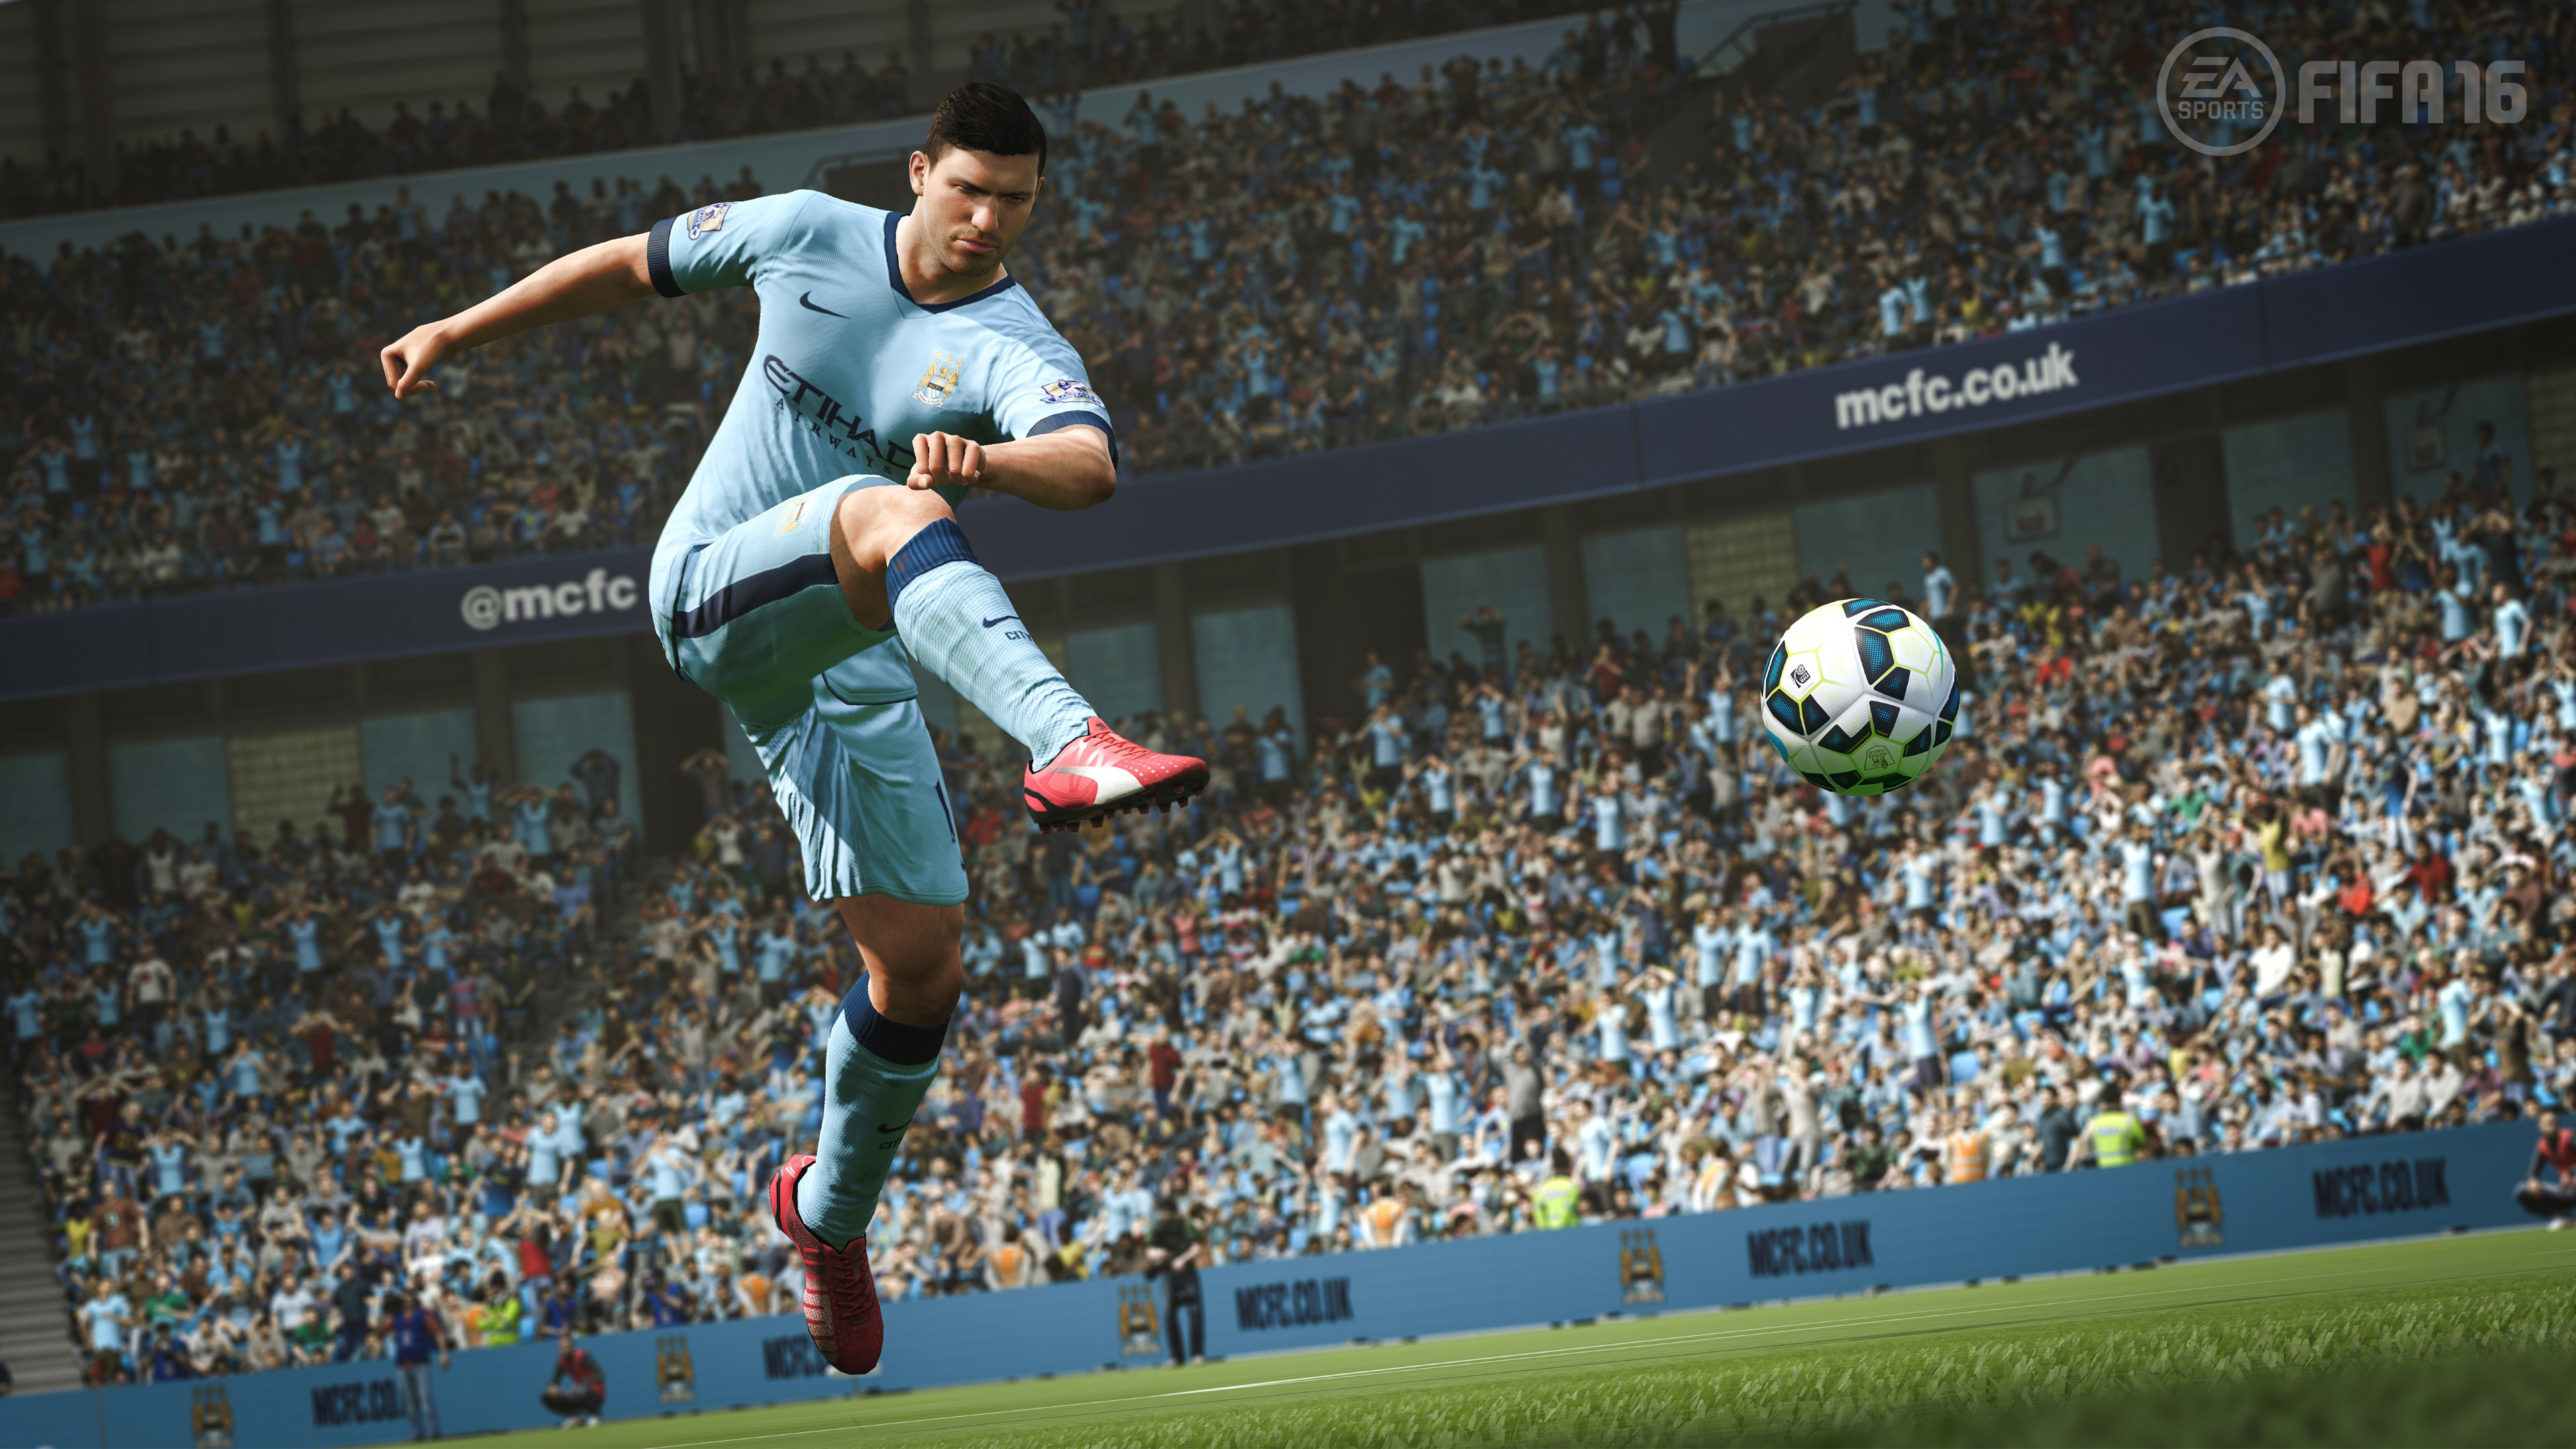 fifa 16 hd wallpapers 4k